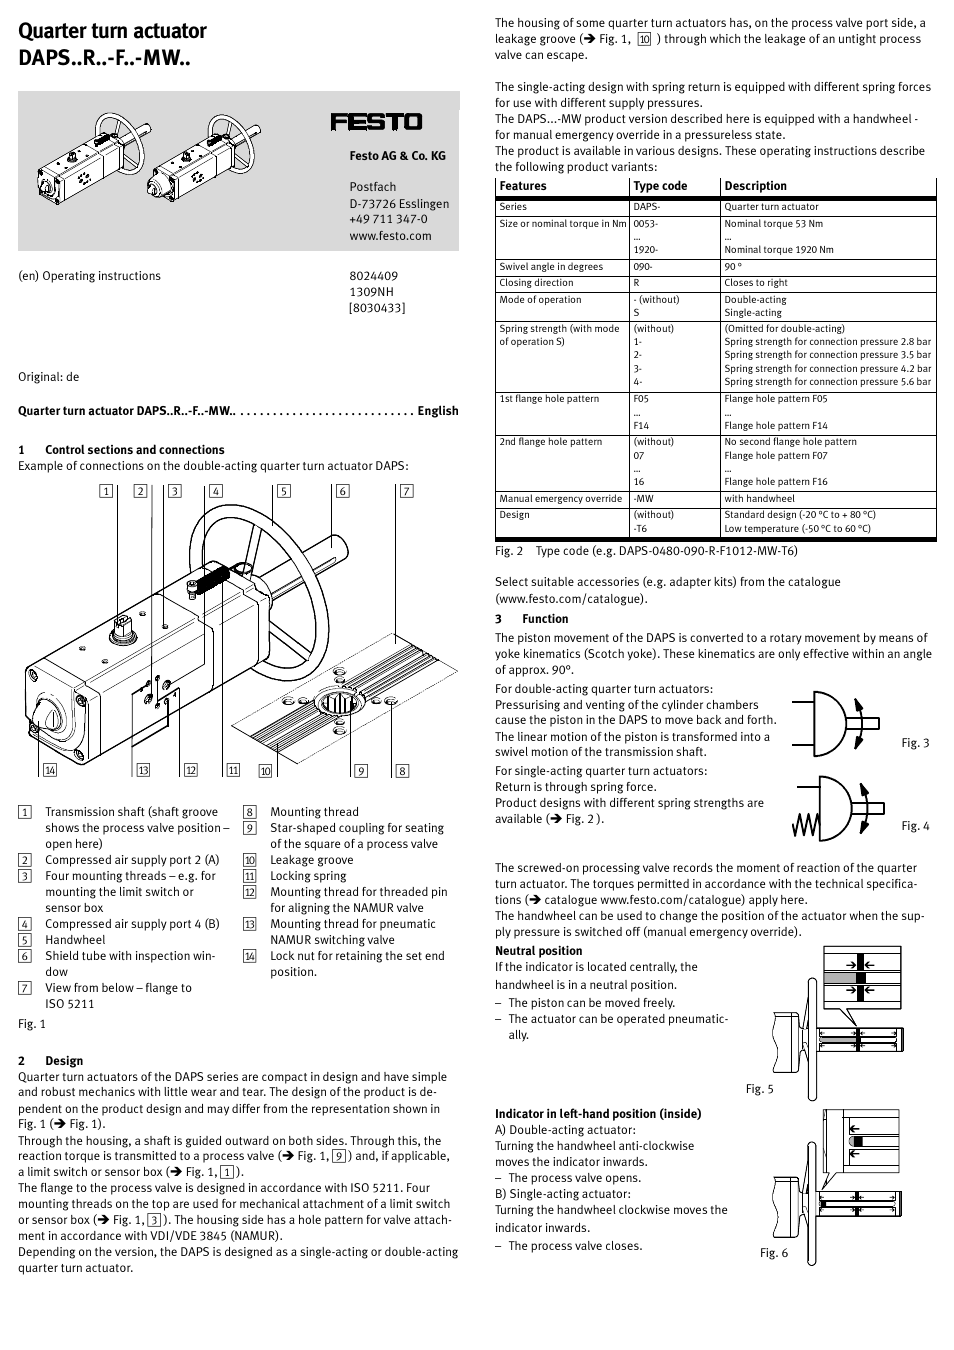 medium resolution of festo sypar daps user manual 5 pages also for daps